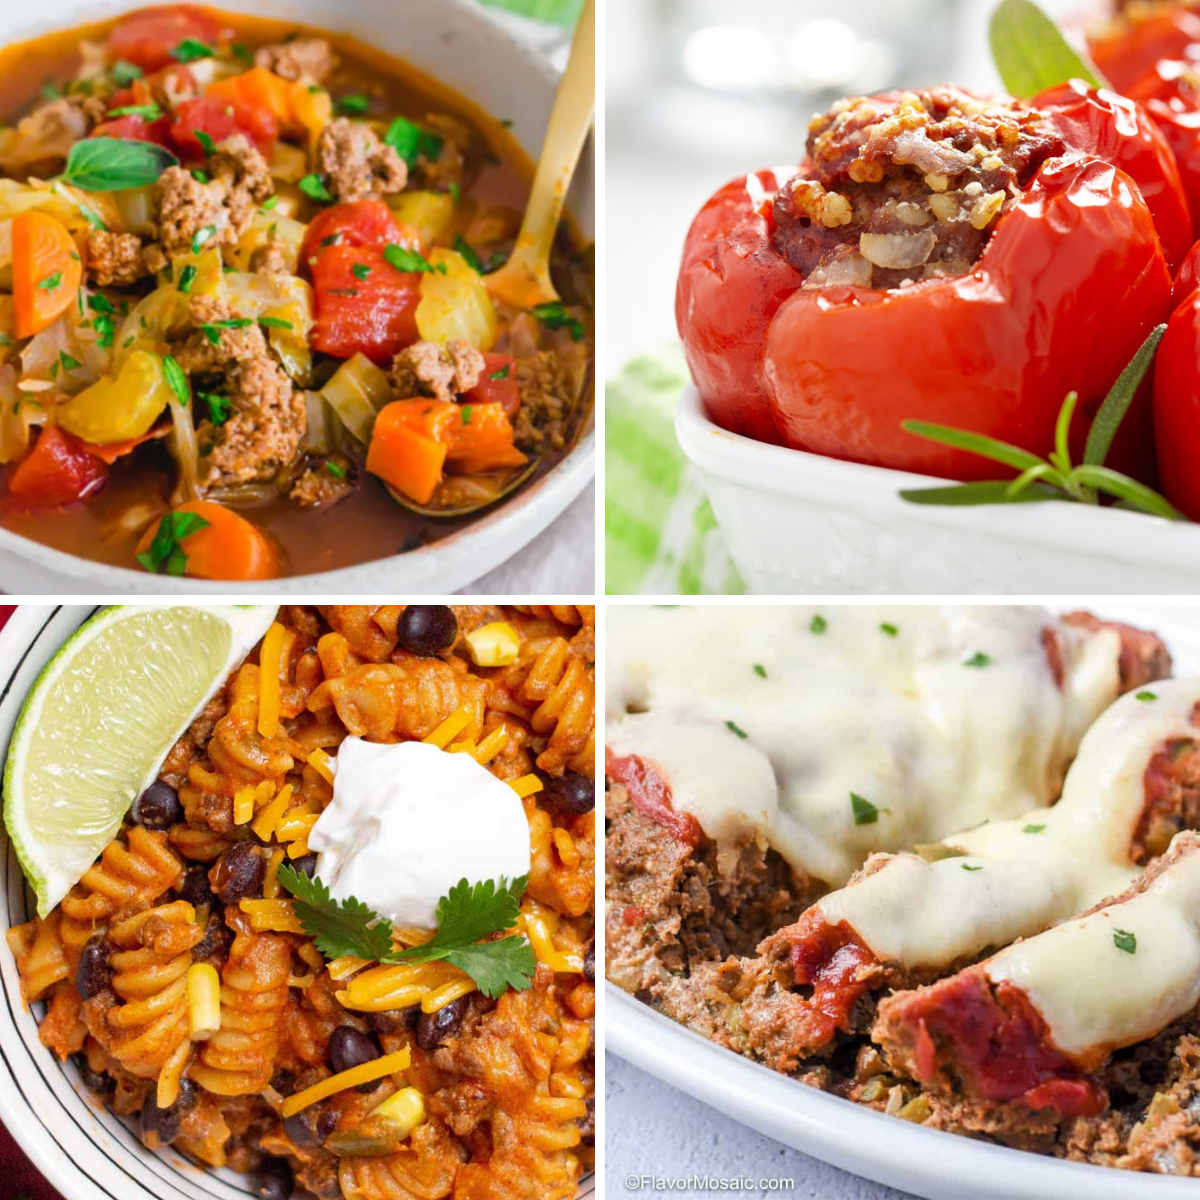 Four images in a grid: cabbage soup, stuffed peppers, taco pasta, and meatloaf.